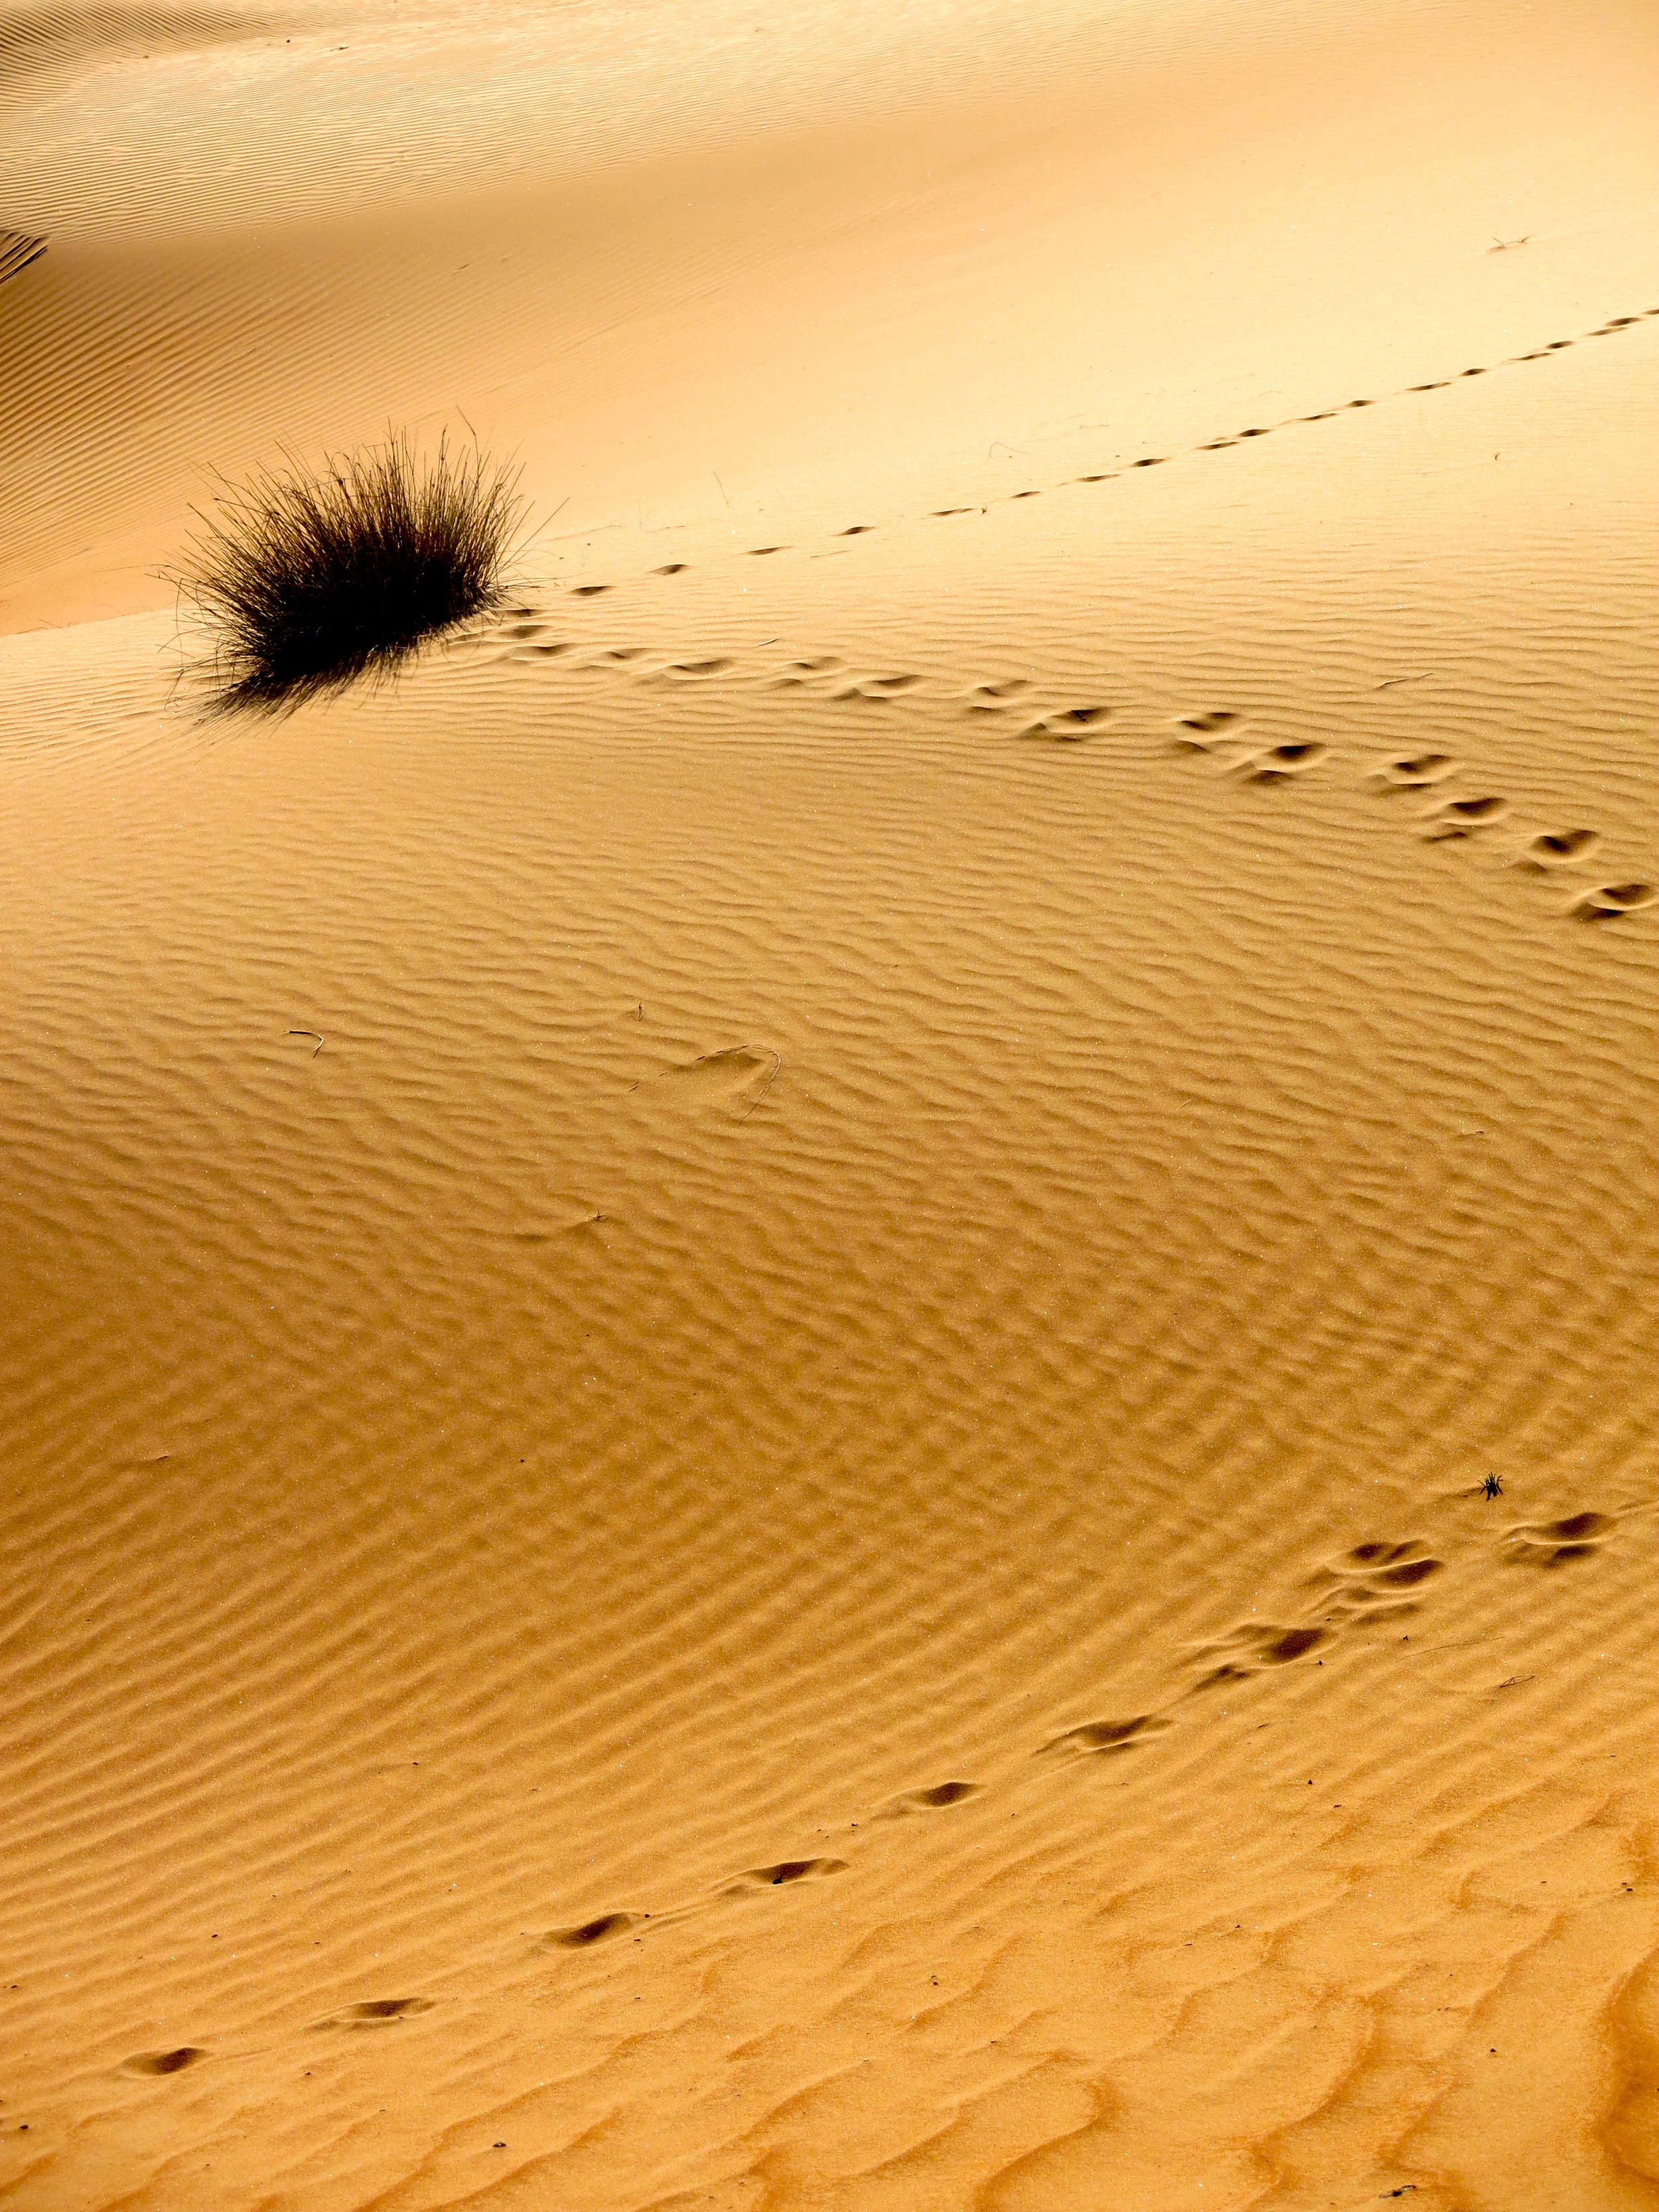 Red sands dunes in the Wahiba Sands desert